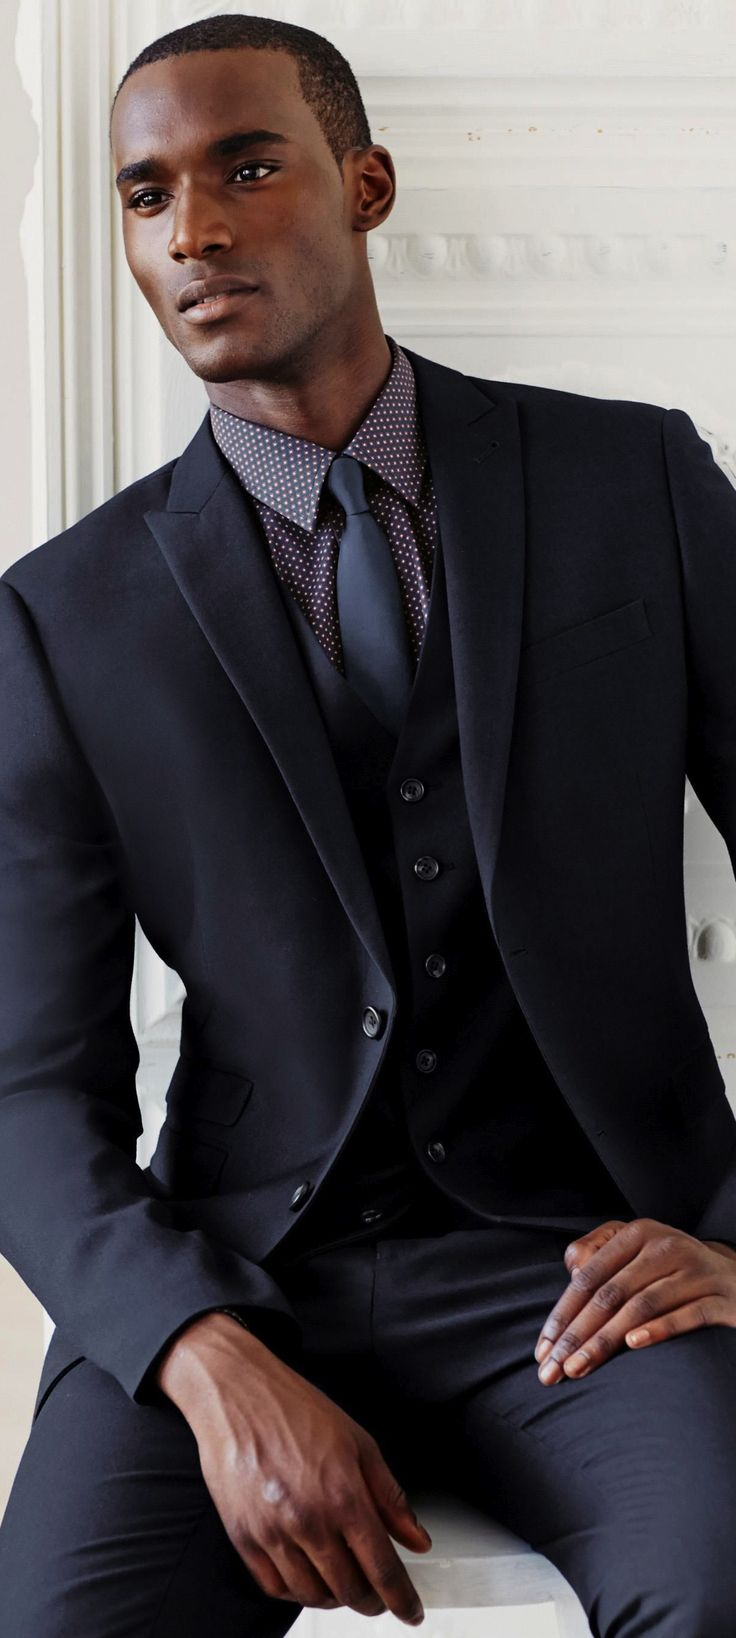 Suit up: Navy is the new black